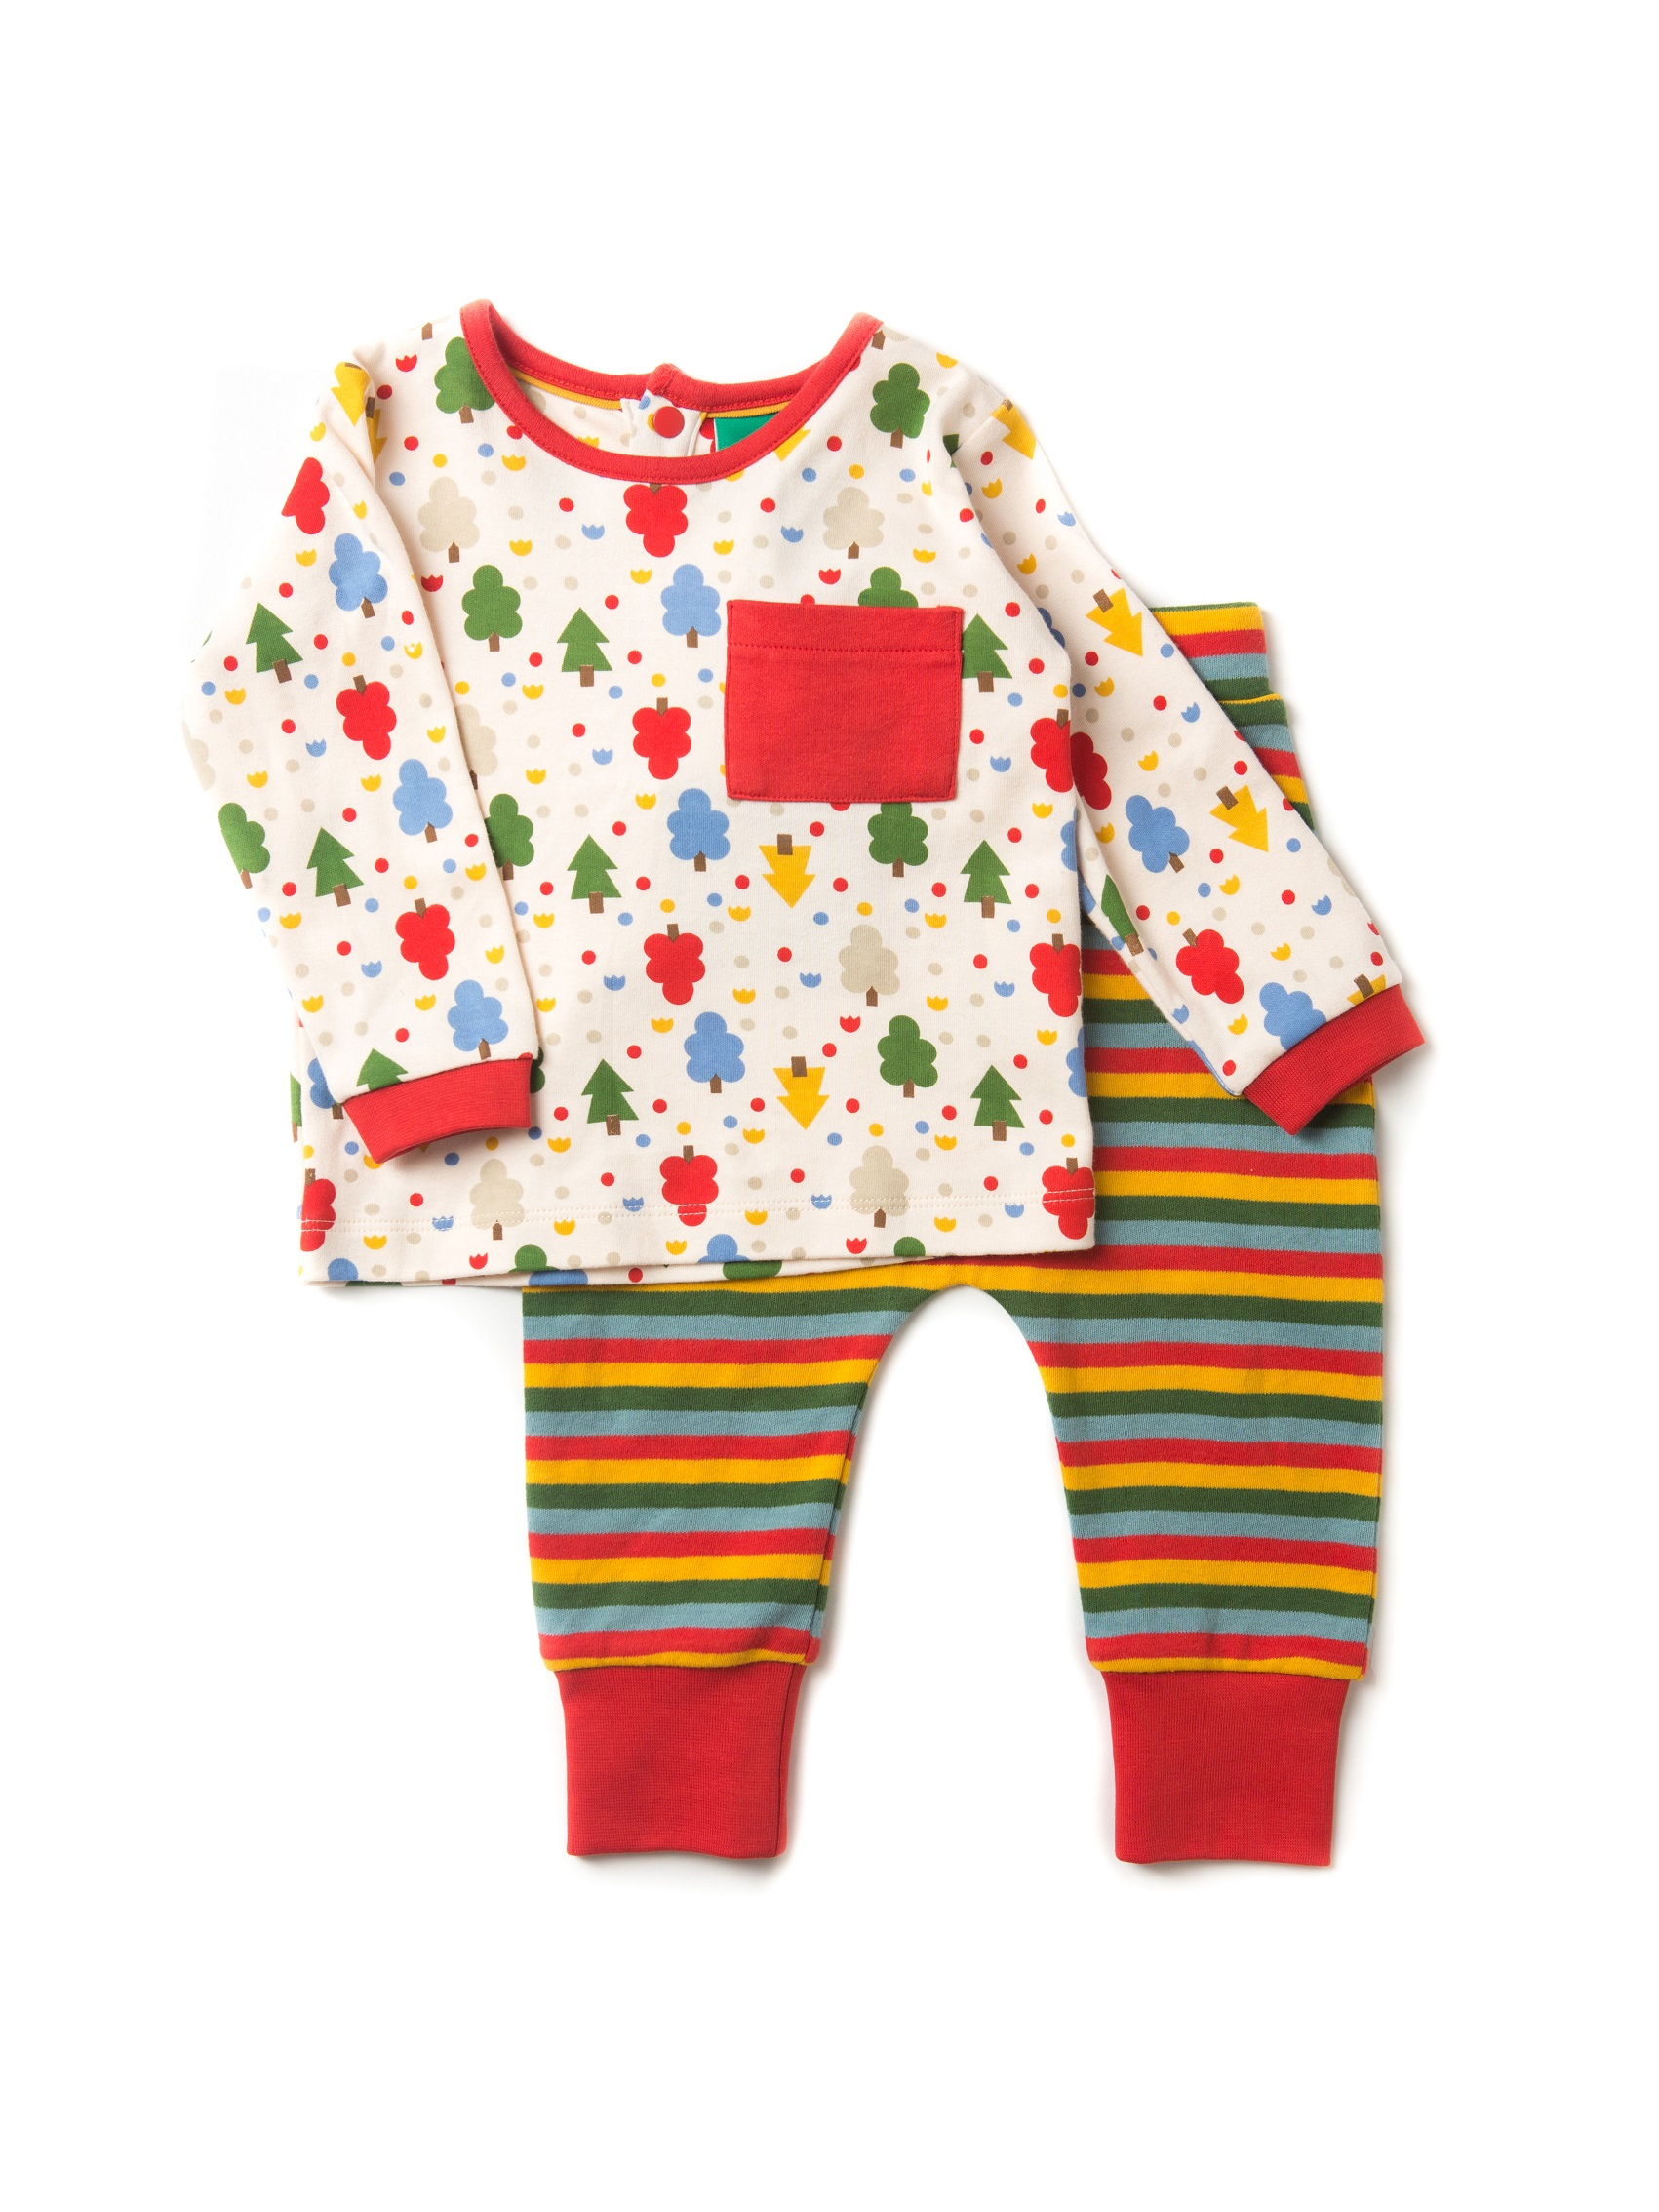 Best Baby Gift Sets : Organic baby gift sets my fair ethical fashion for